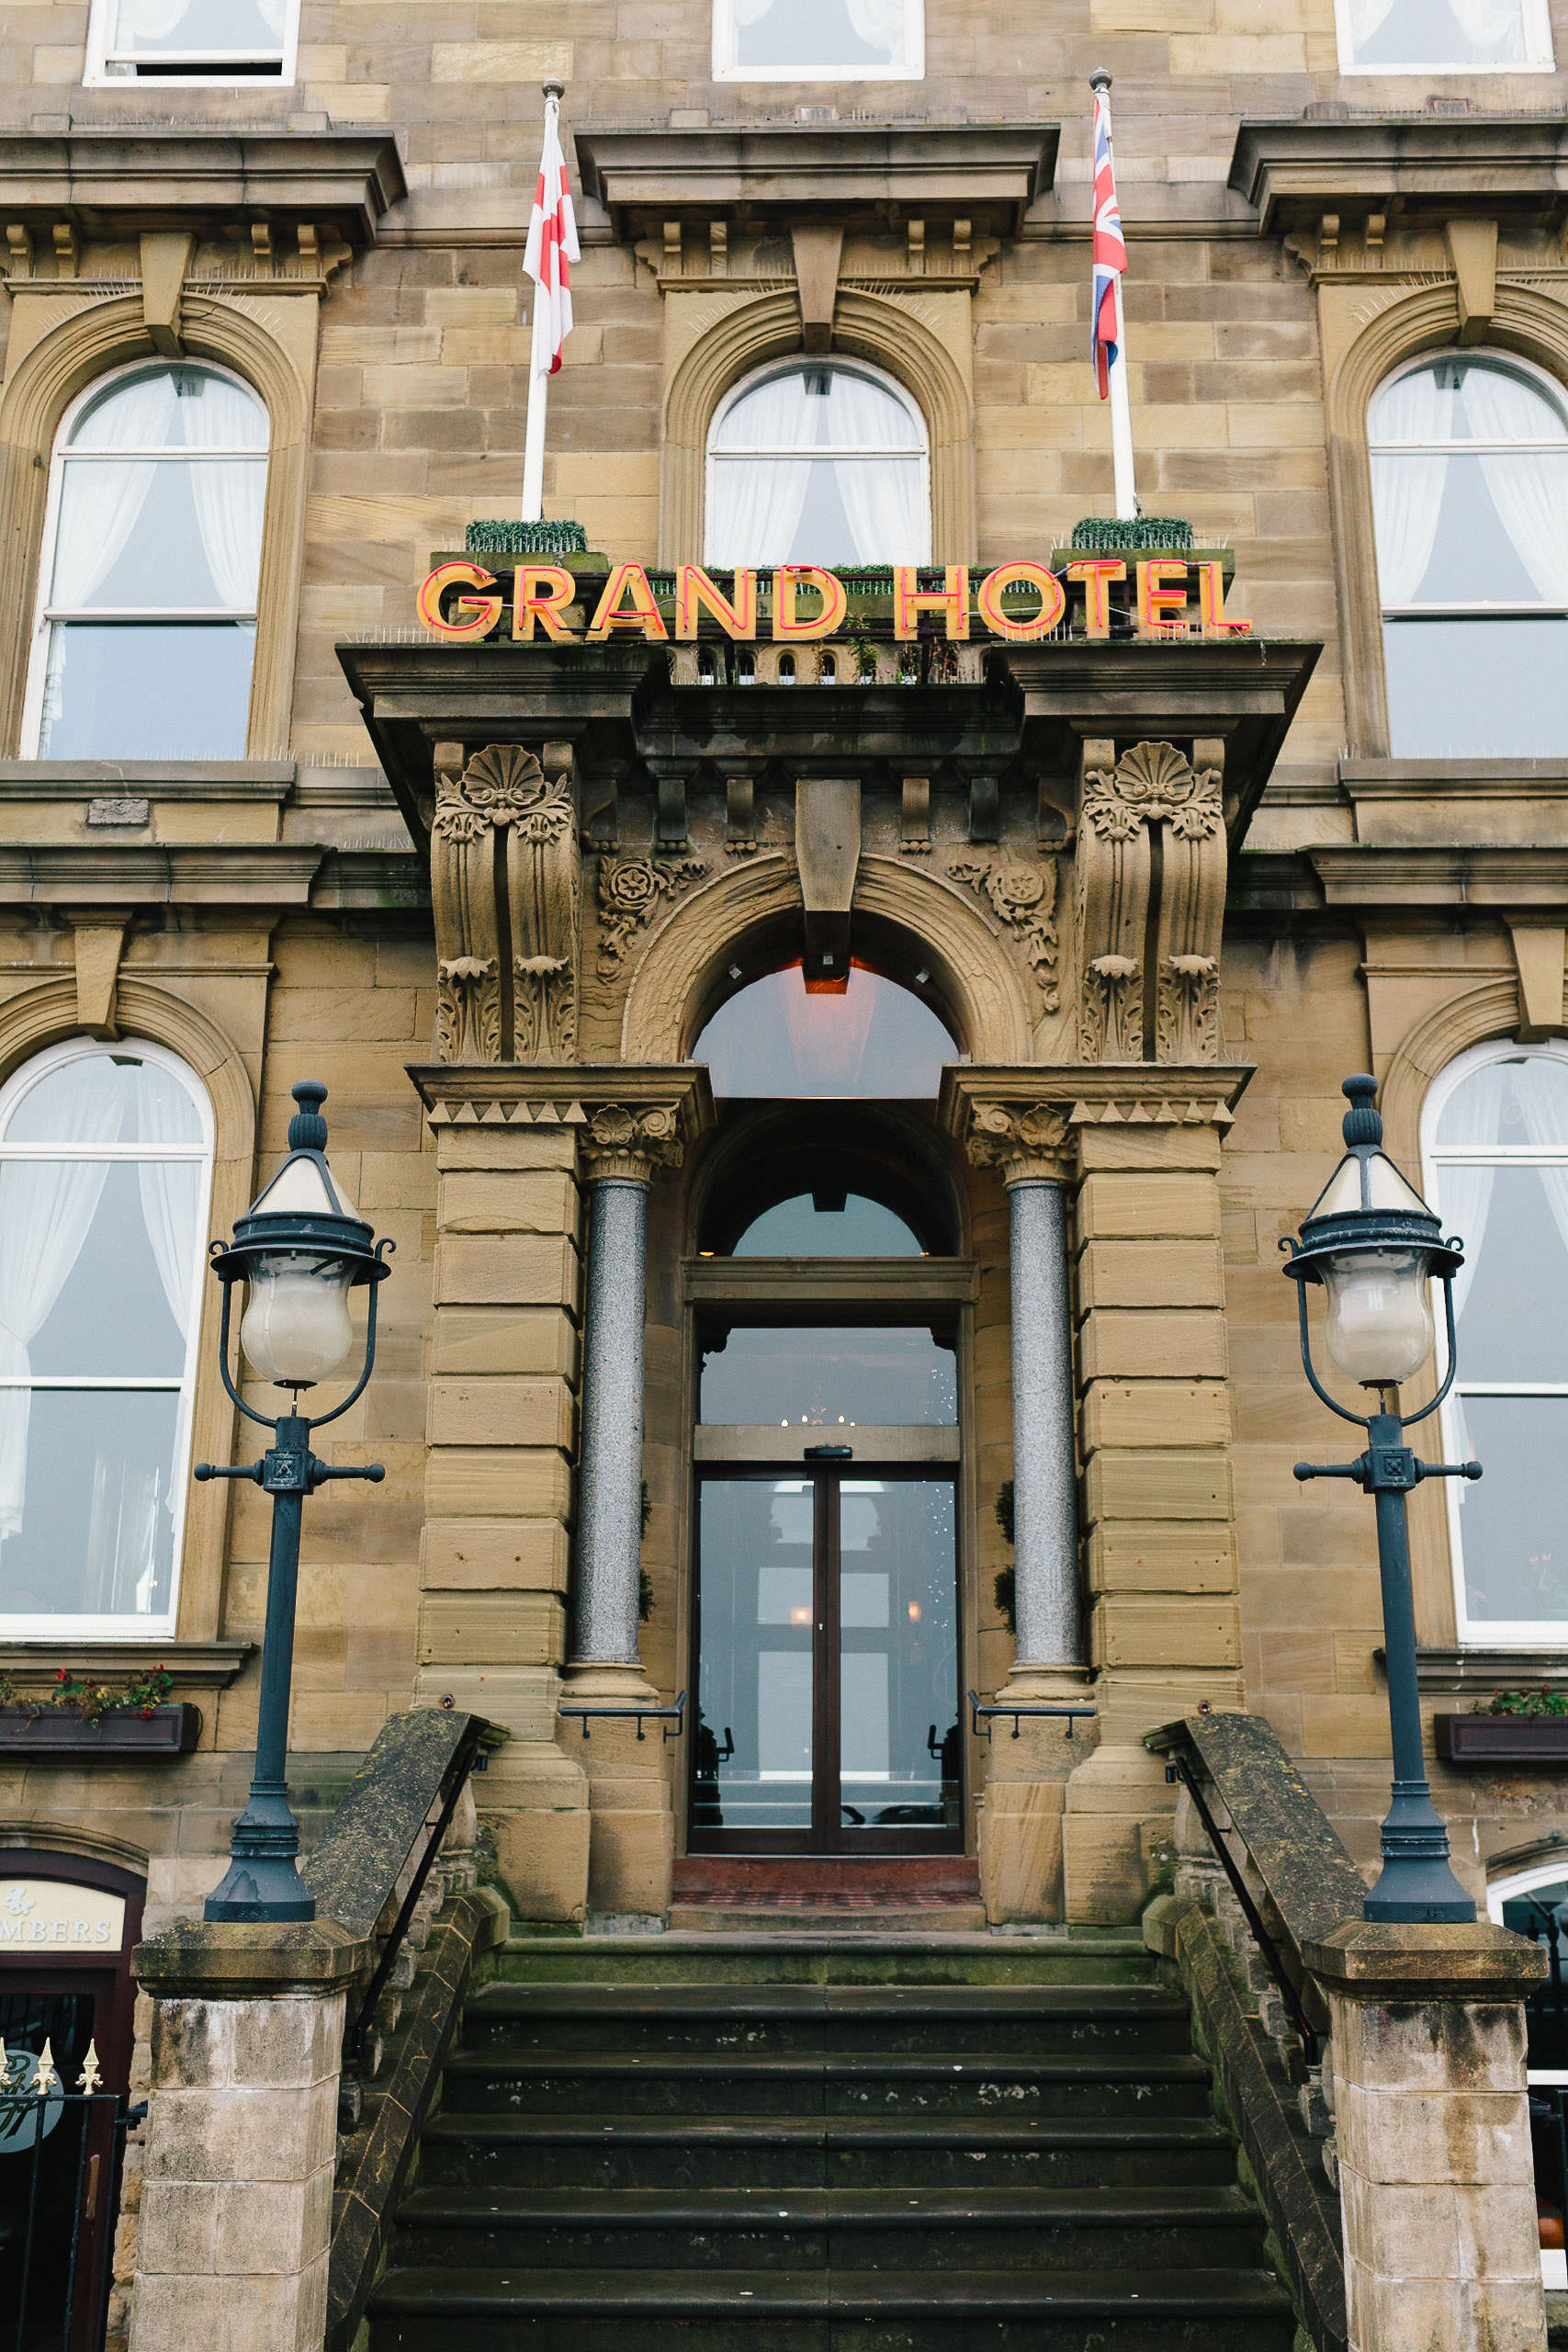 Entrance to the Grand Hotel, Tynemouth